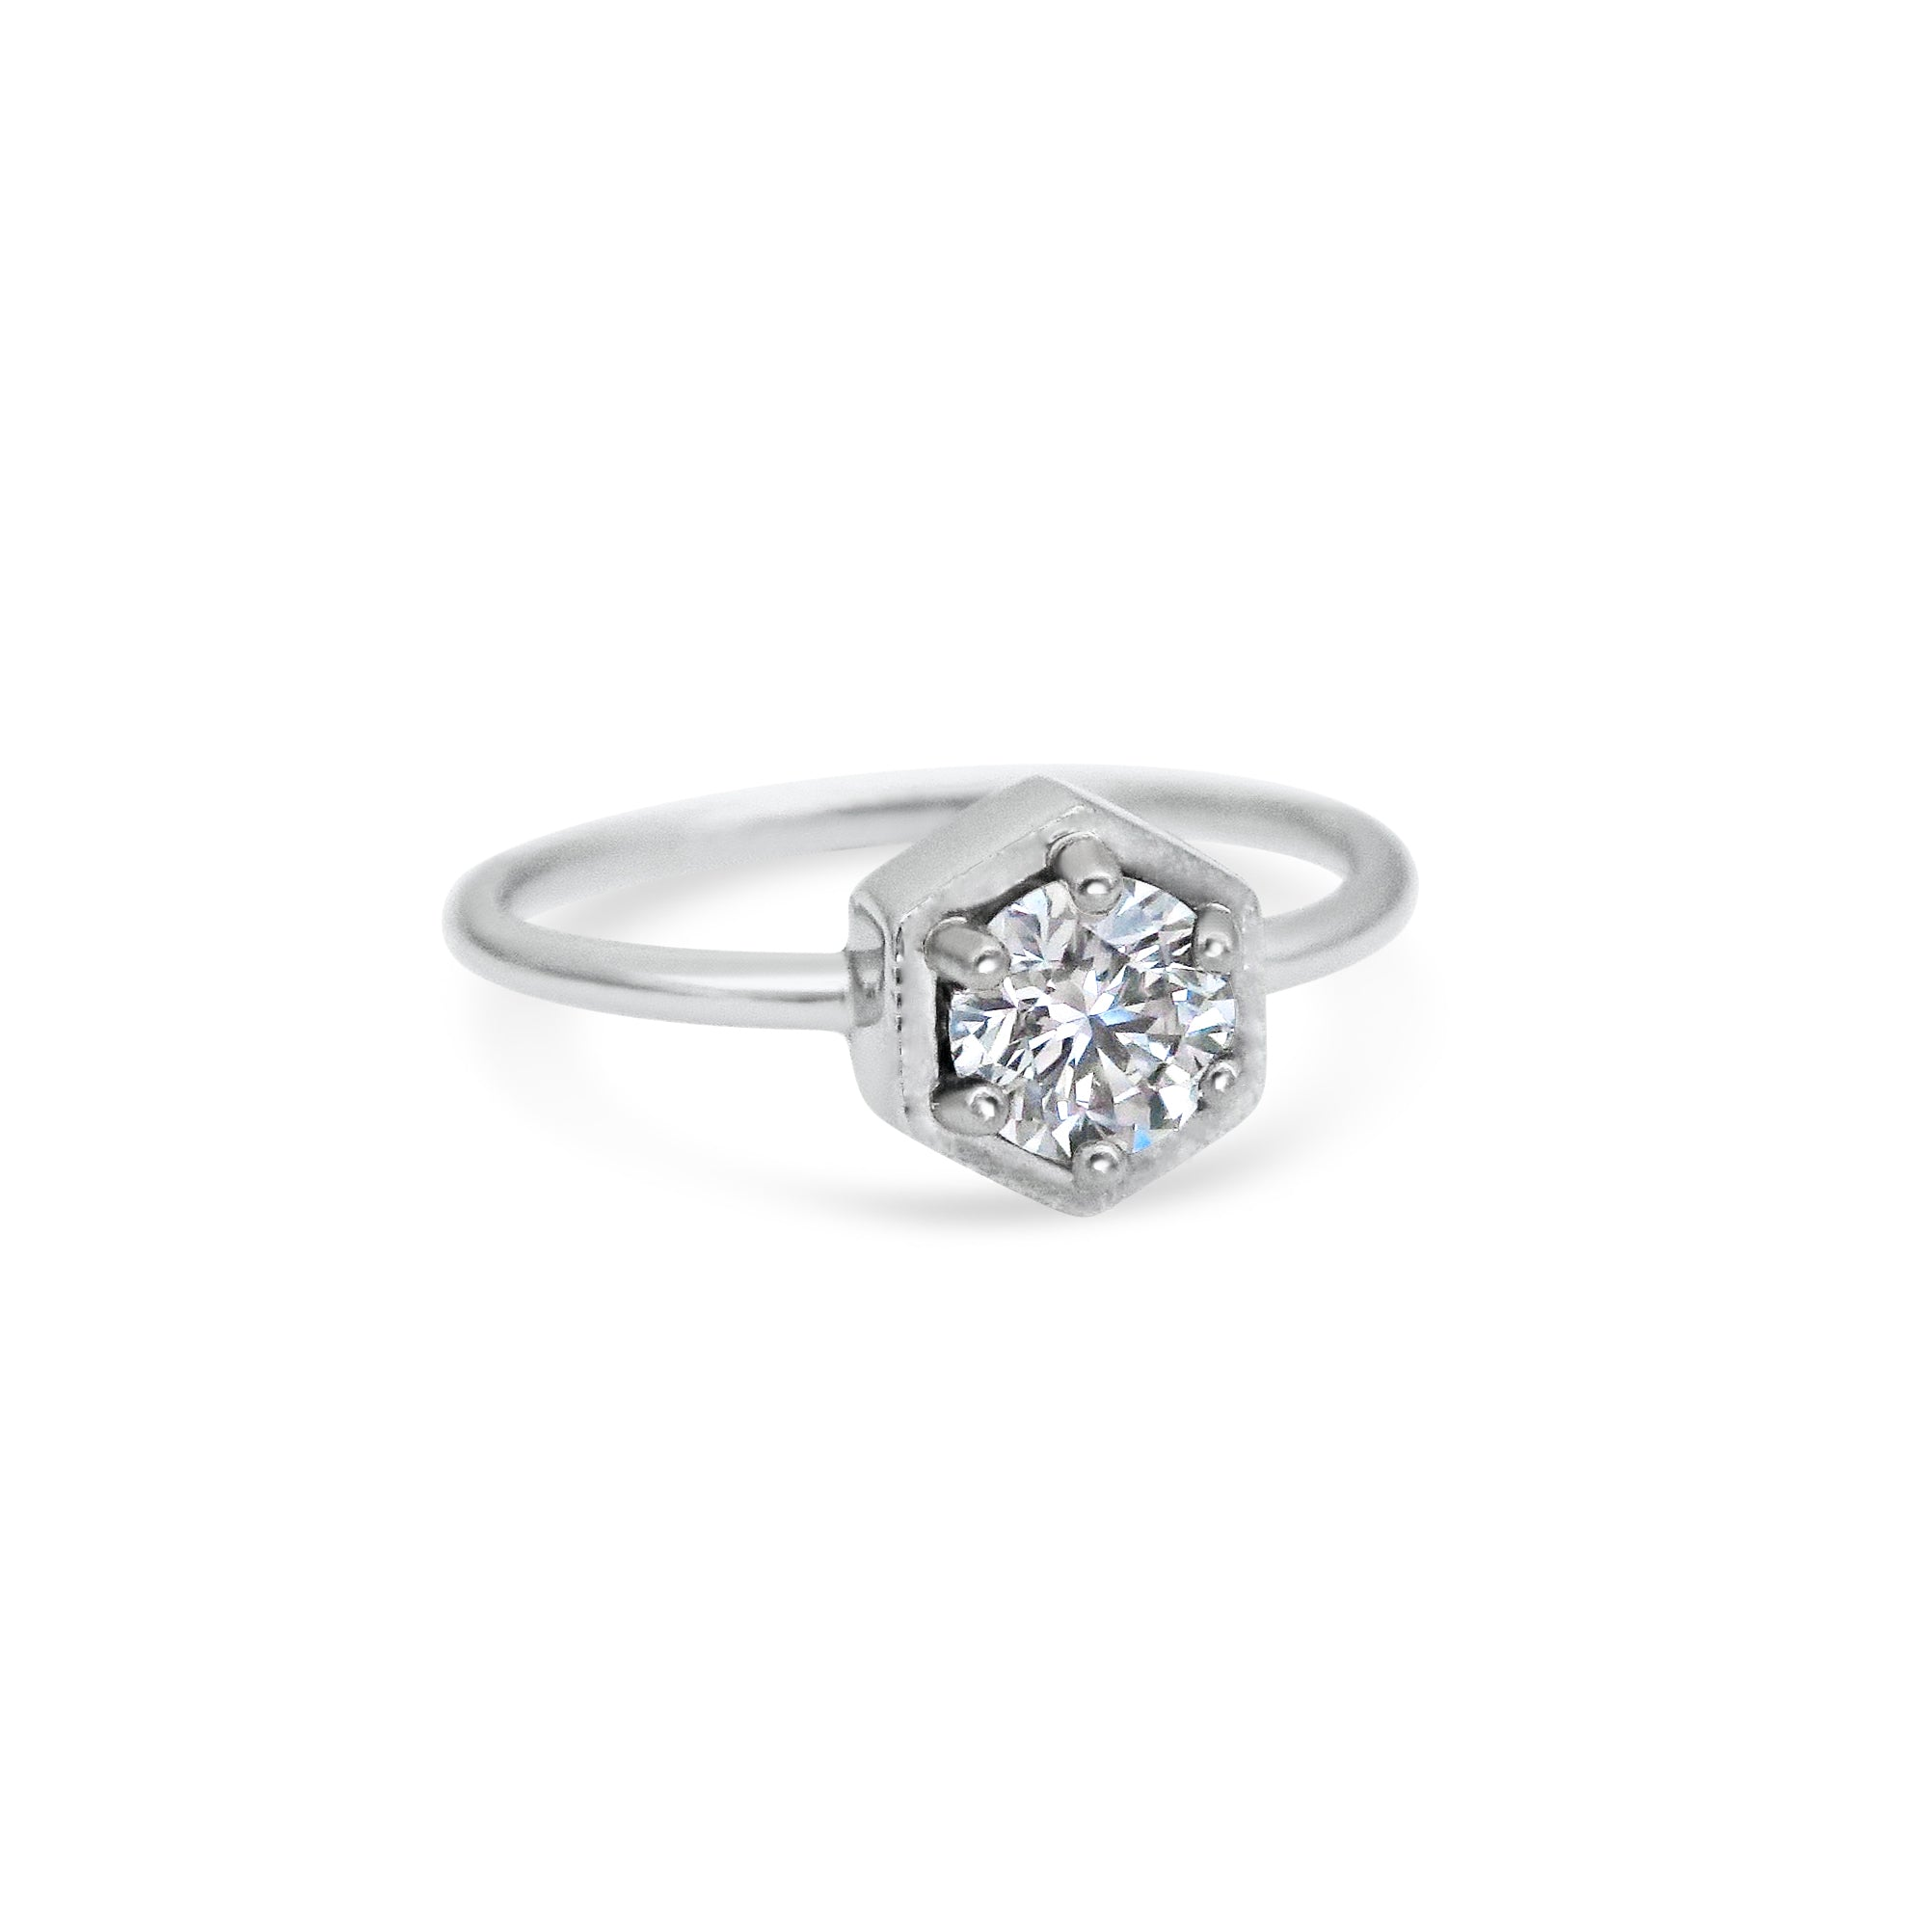 1ct Round Diamond and Hexagonal Frame Platinum Engagement Ring